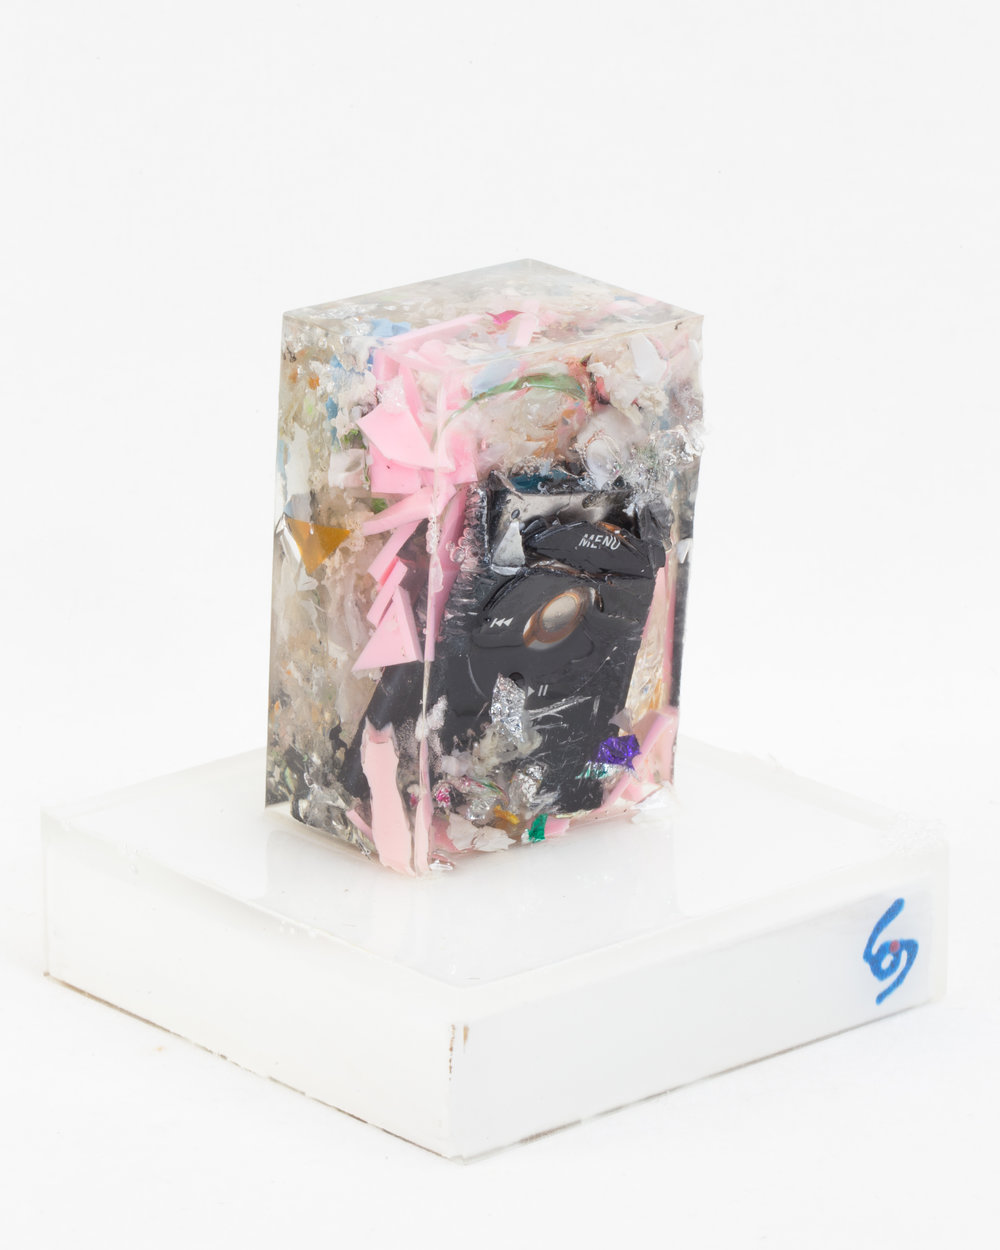 Generation 4 (Standard) - Generation 4 Standardized Trash Sculpture. Domestically sourced resin. Still looks the same.